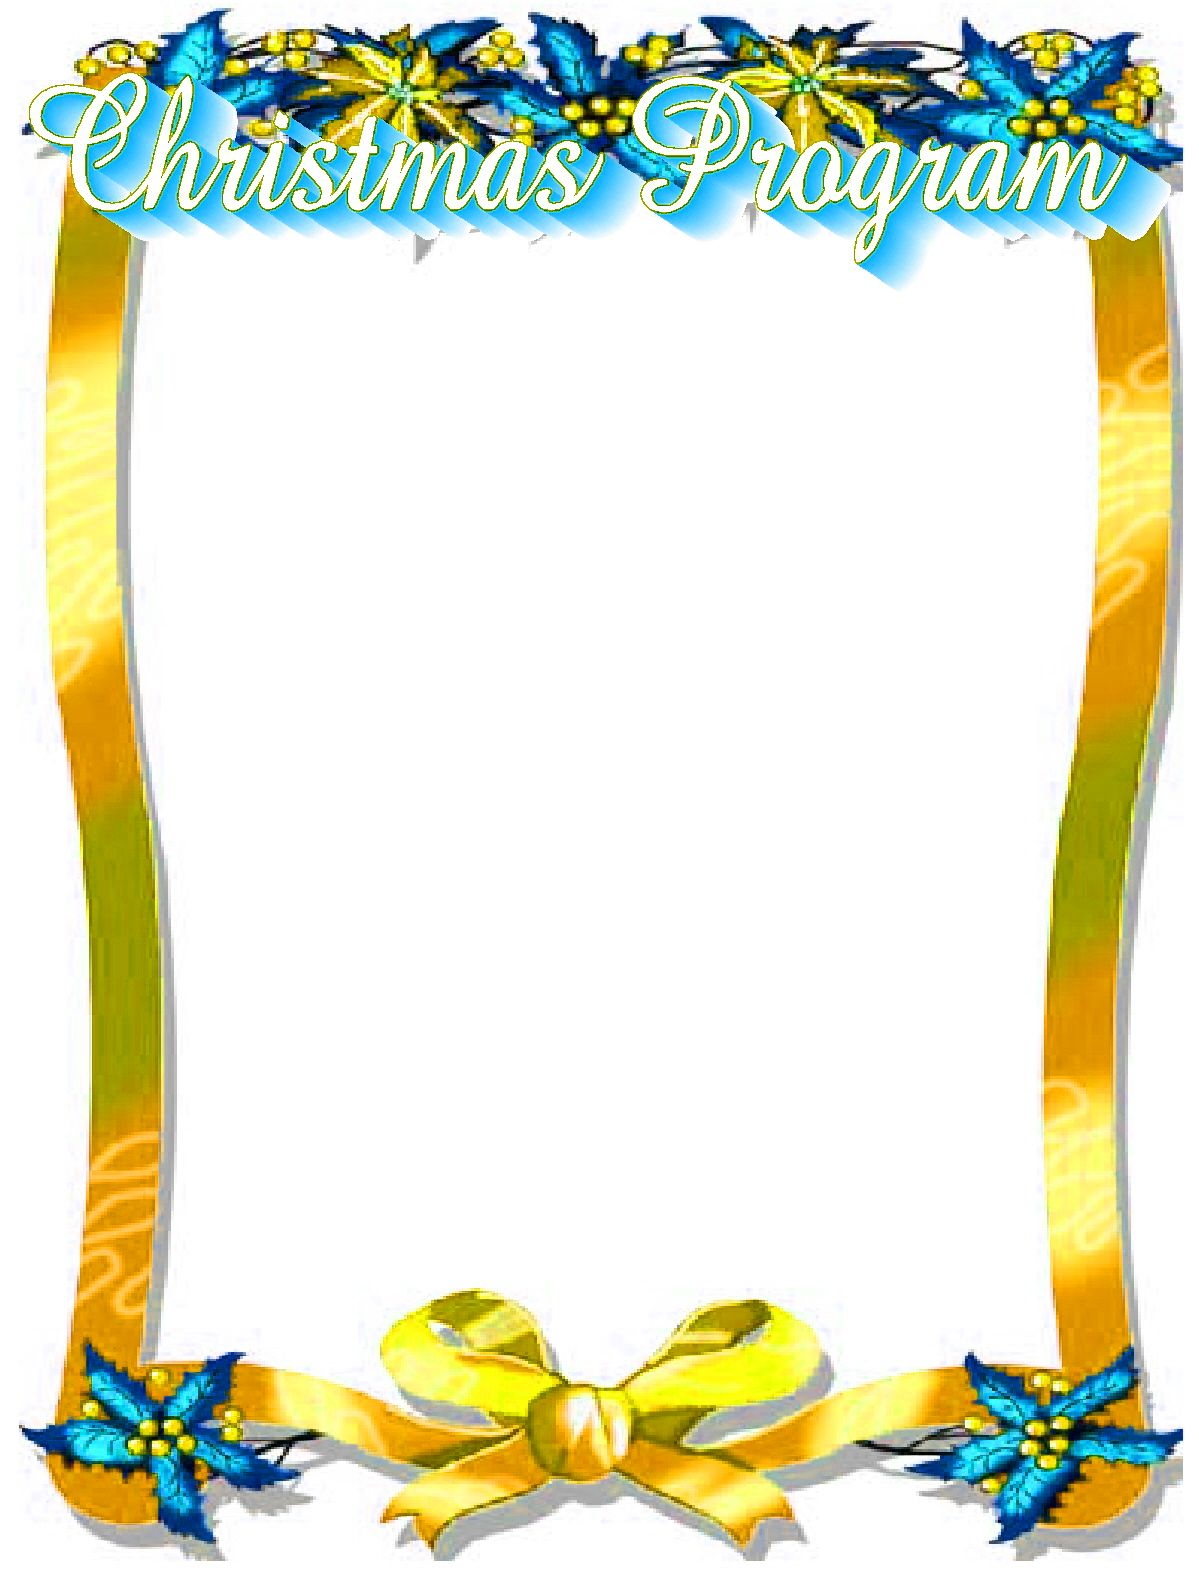 Free Religious Christmas Clipart Borders And Backgrounds Christian.